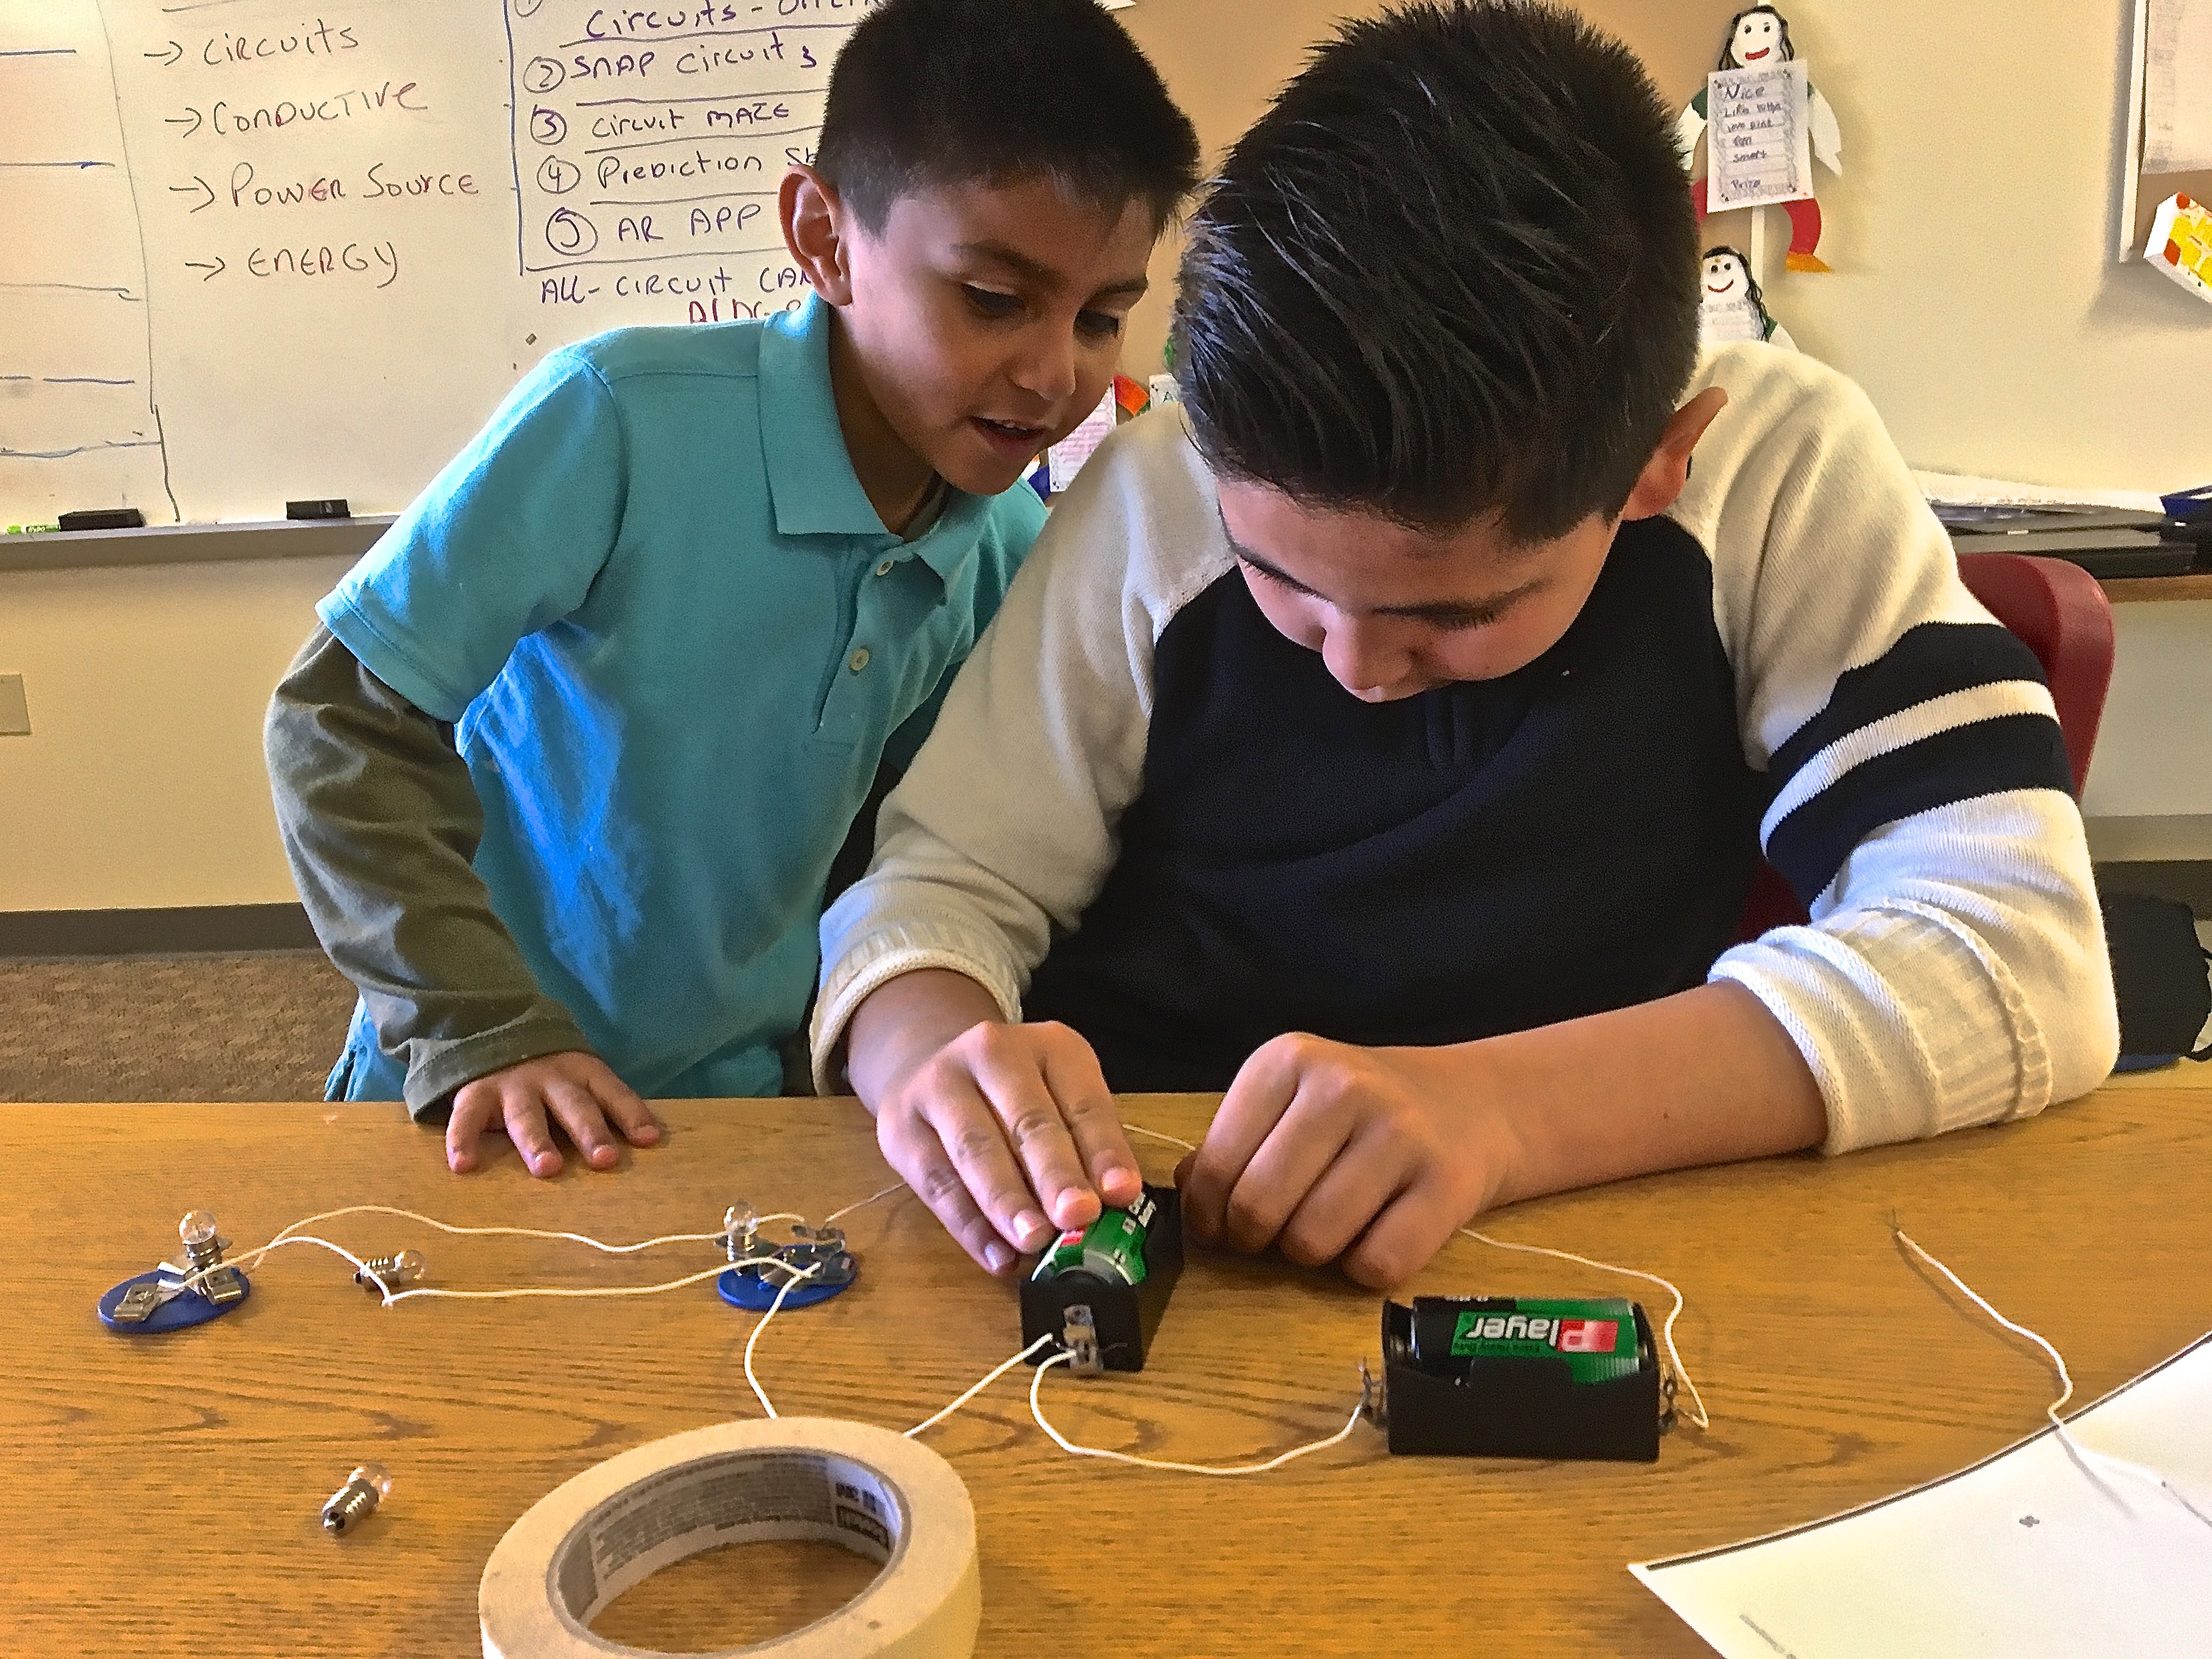 Maker Education Camp Circuit Crafts User Generated Snap Circuits Green Ebay Squishy